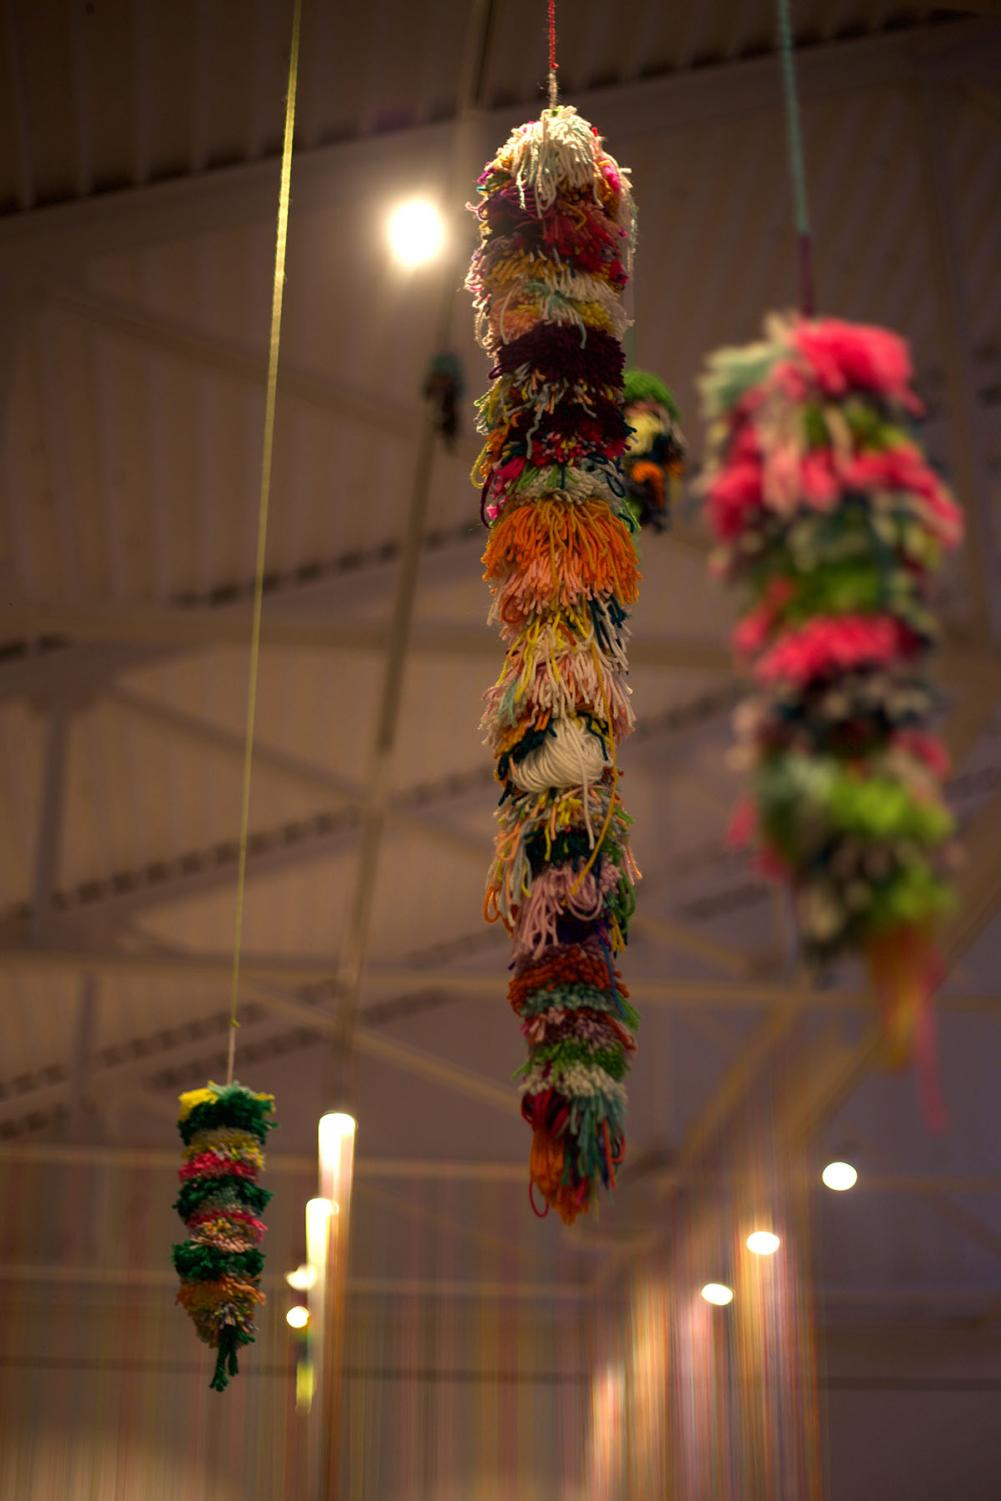 Fischer+created+hanging+plants+in+the+design+of+yarn+for+viewers+to+gaze+at.+